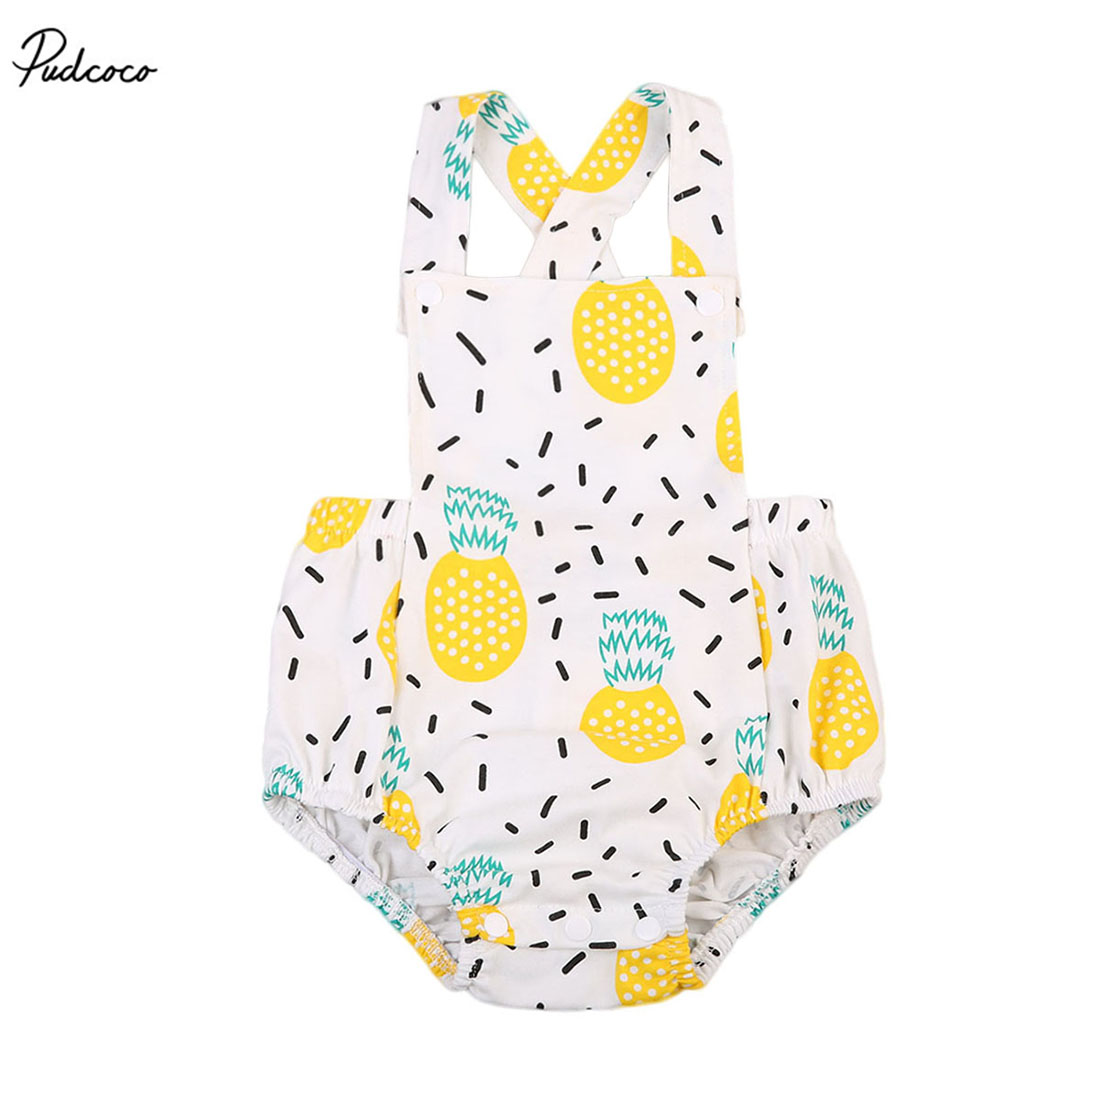 Cute Infant Baby Girl Clothes Pineapple Print Jumpsuit Sleeveless Backless Bandage   Romper   Polka Dot One Piece Outfit Sunsuit